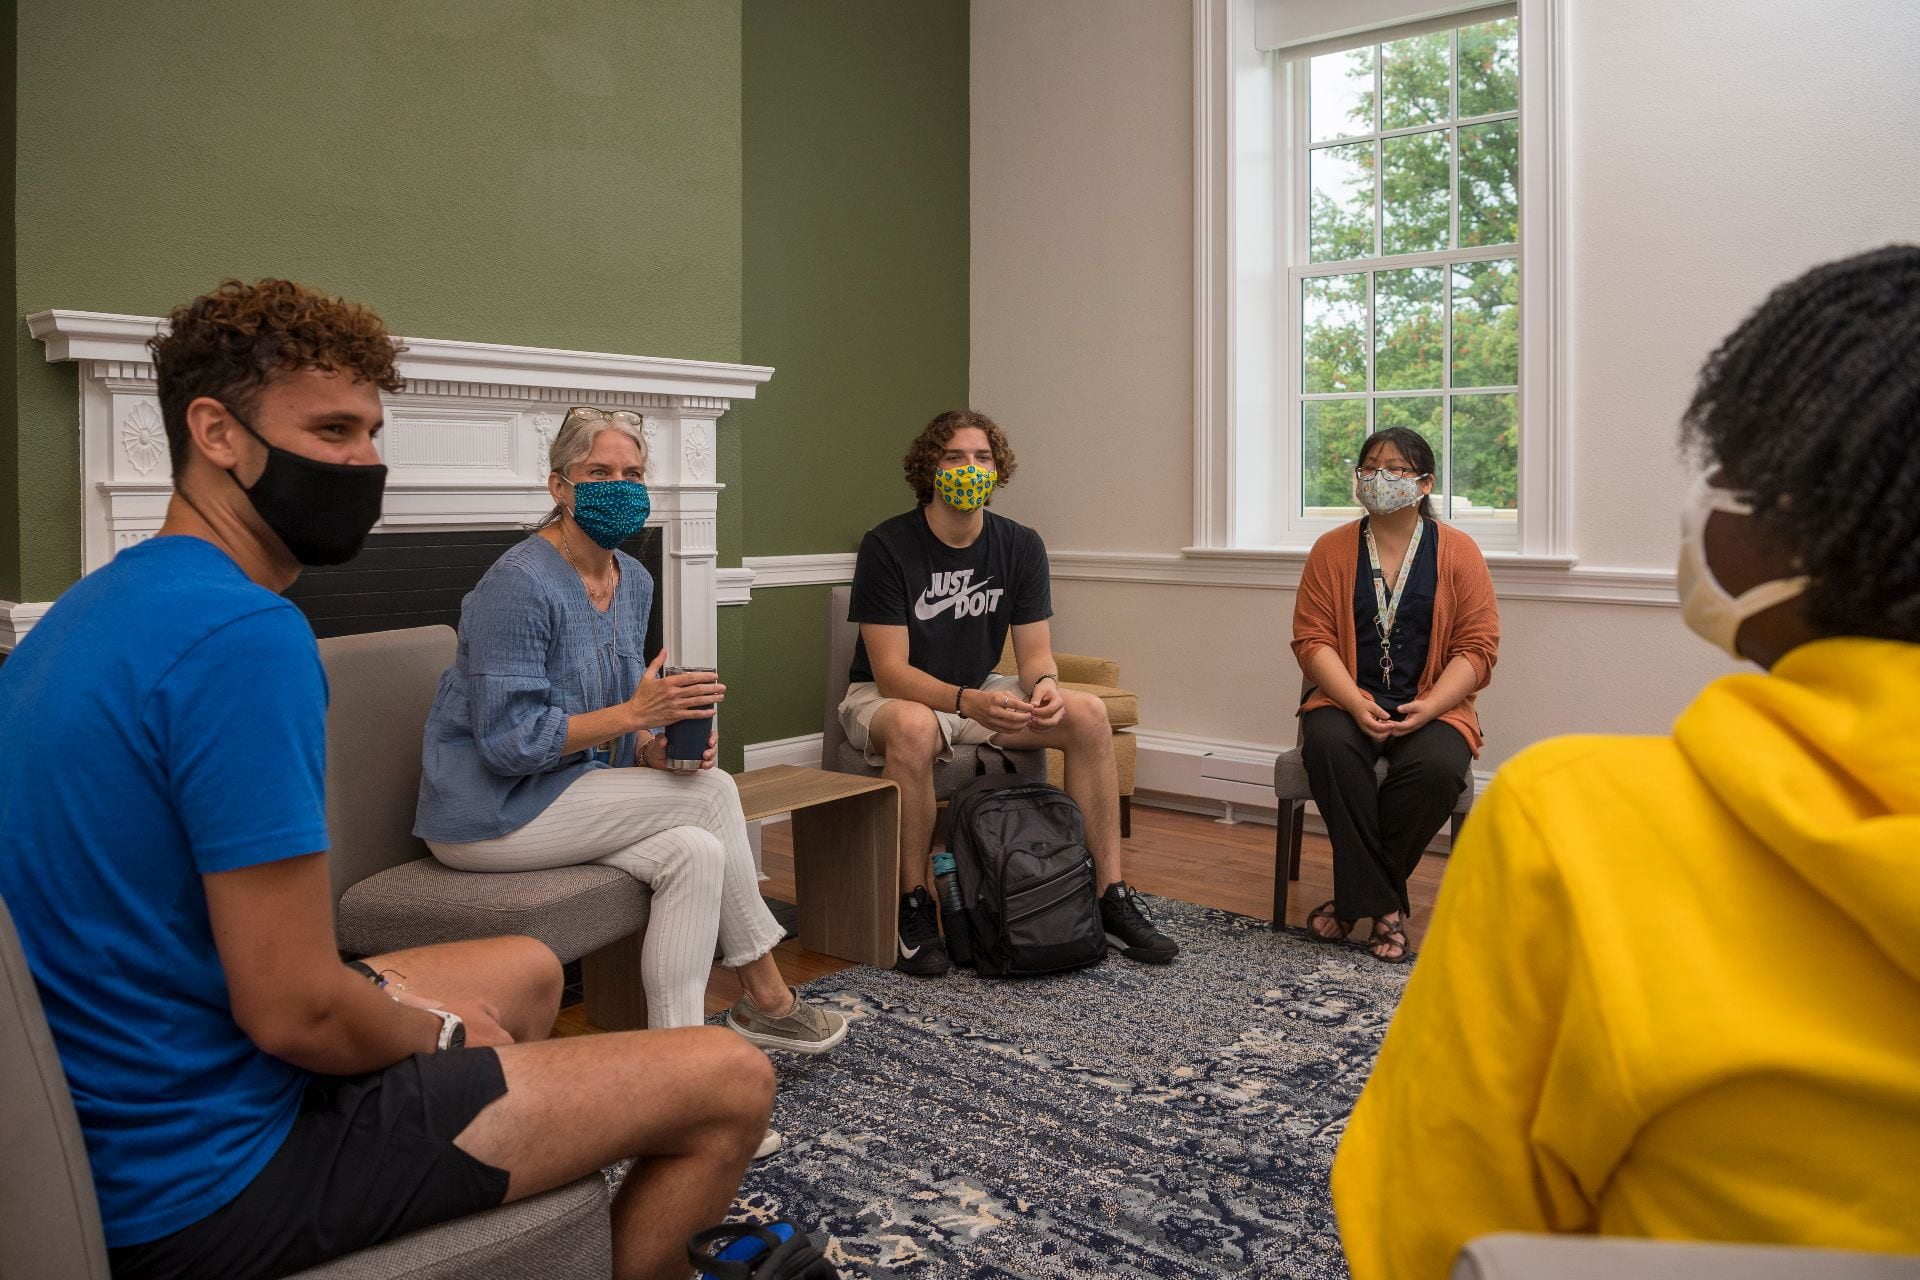 Students and staff connect at University of Delaware Wellbeing Center in Warner Hall